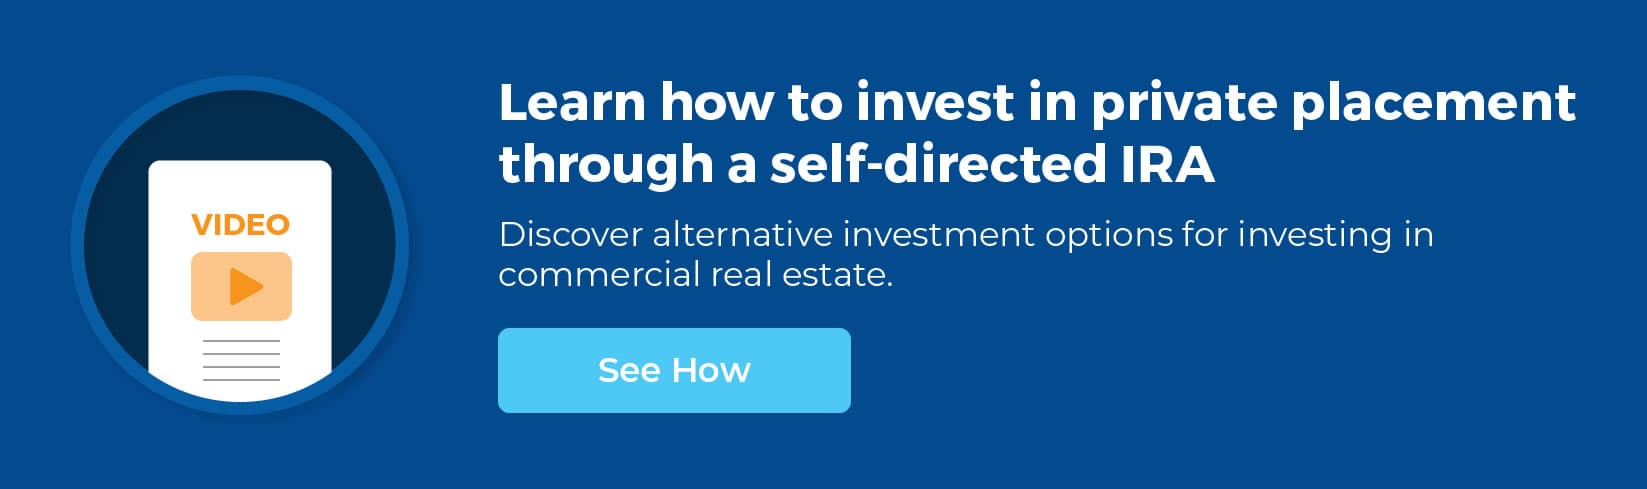 investing-in-alternatives-with-self-directed-ira-02